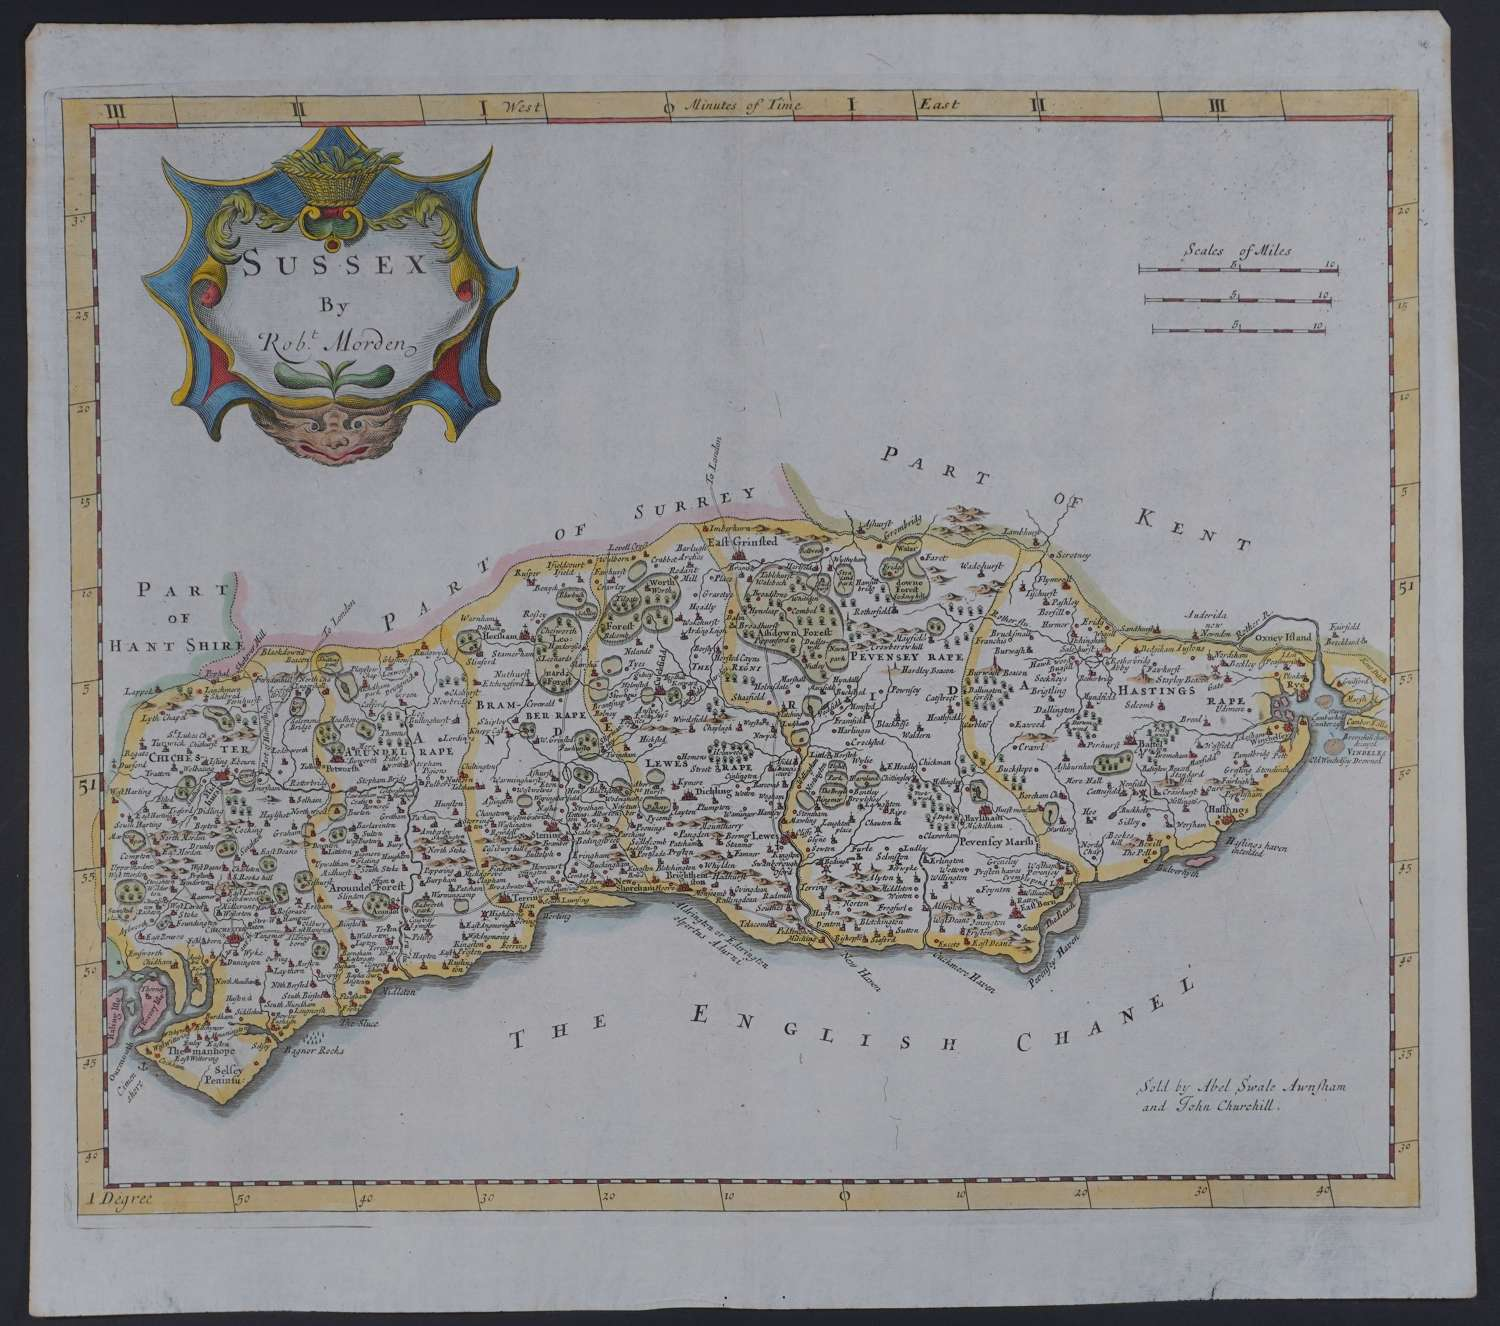 Sussex.1st edition 1695 by Robert Morden